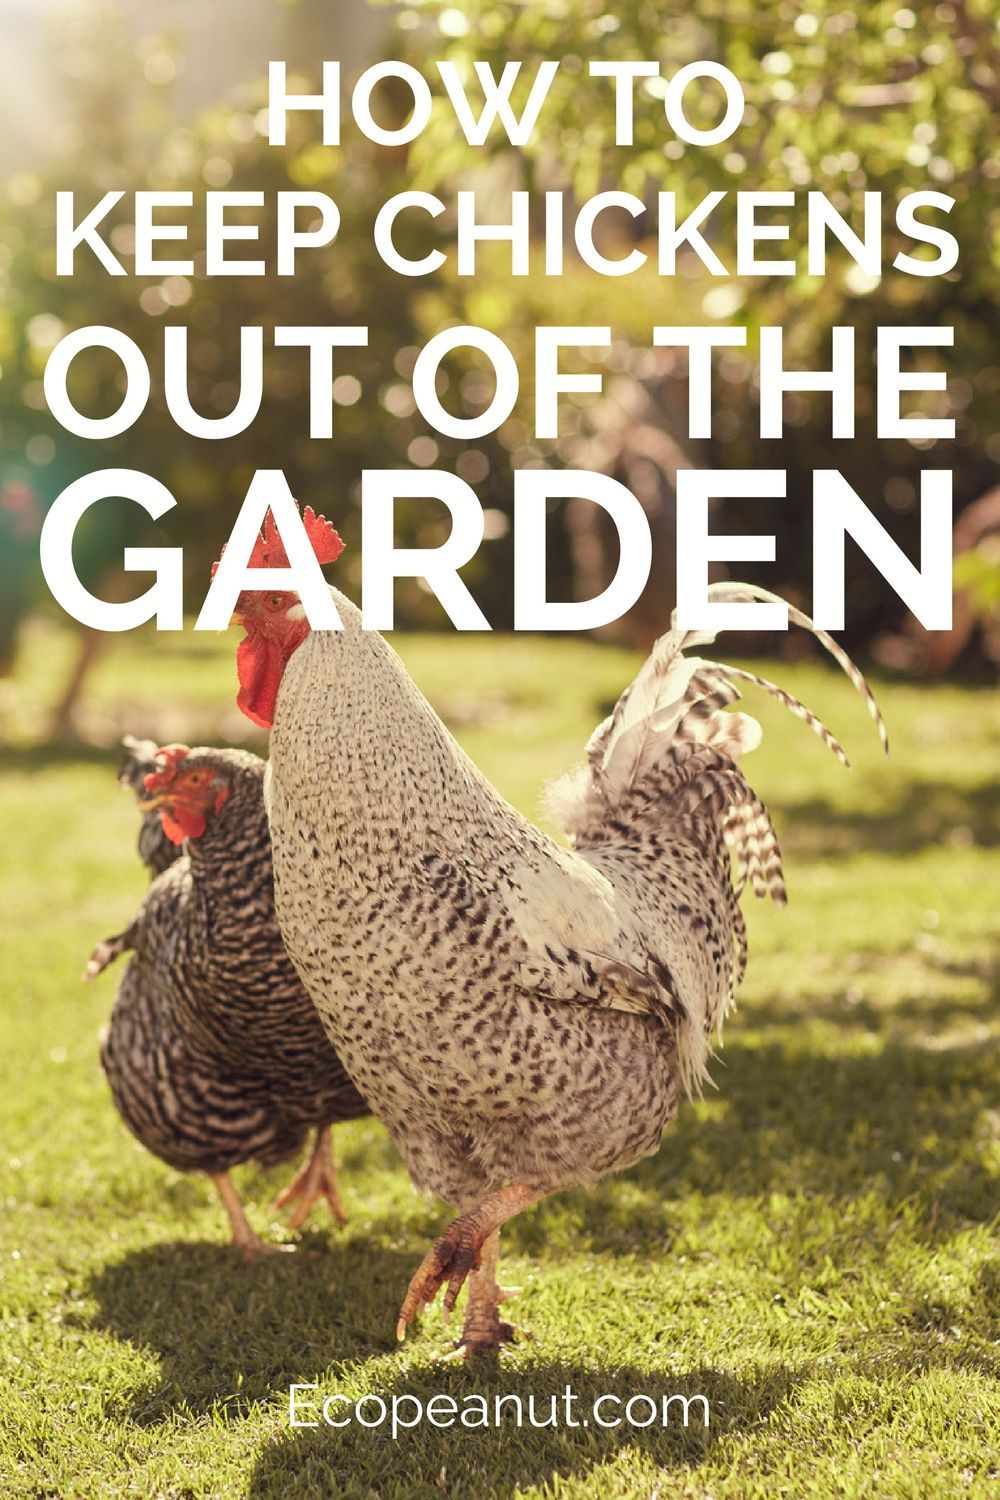 How To Keep Chickens Out Of The Garden | Chickens and Poultry ...